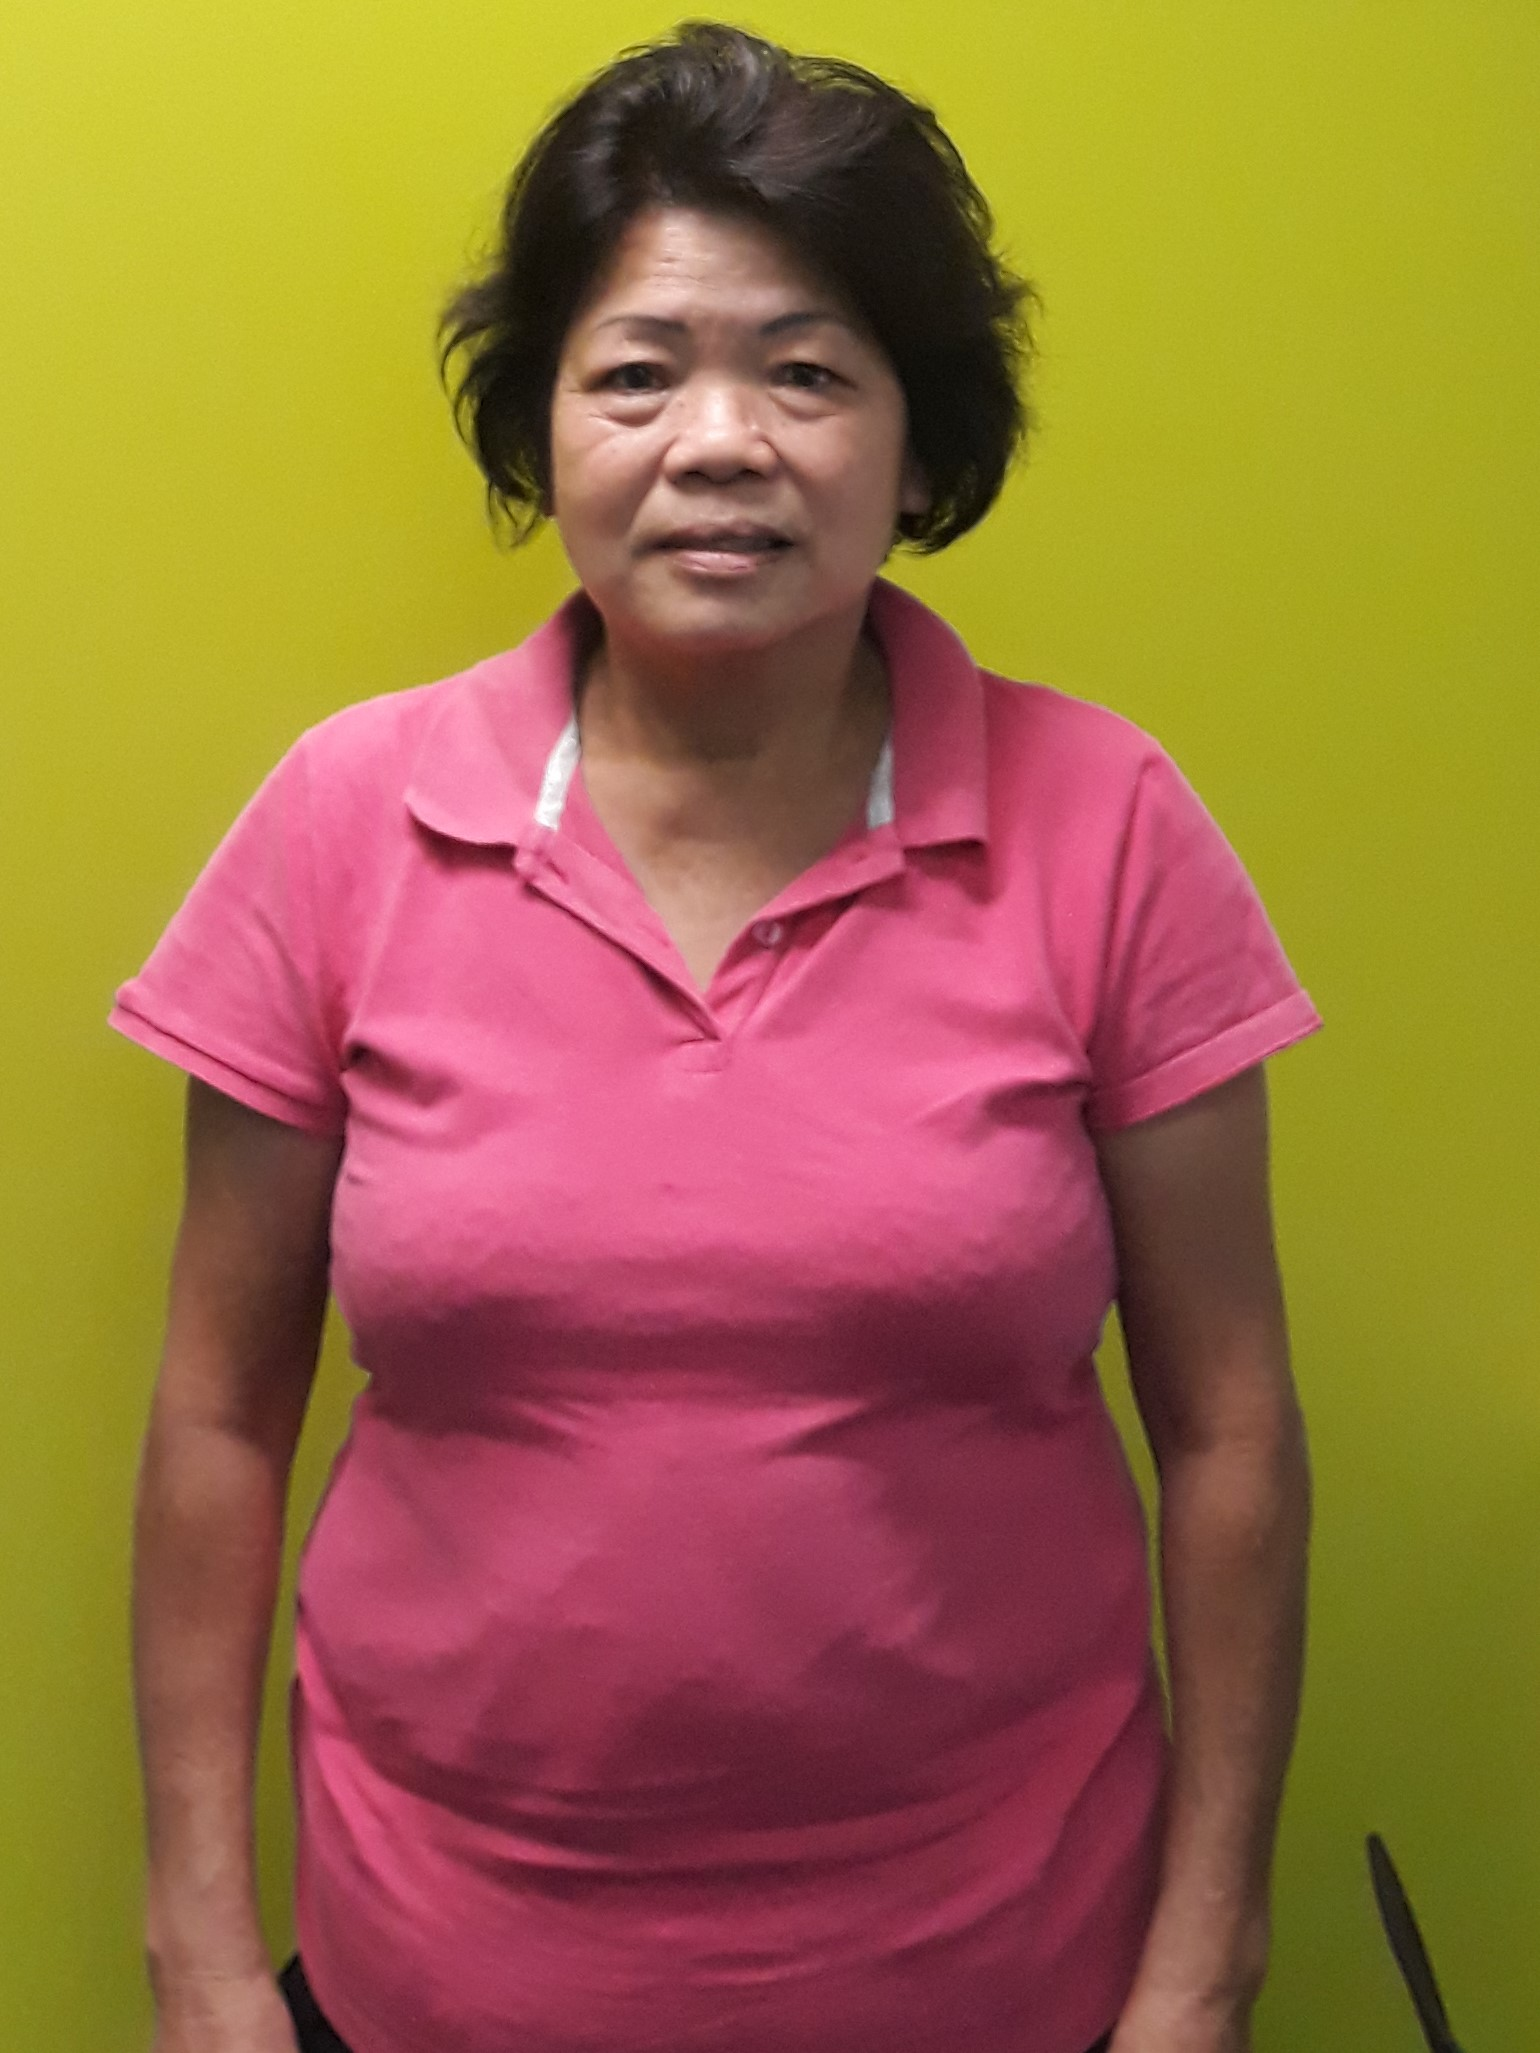 Chanh's motivation removes her barriers to employment